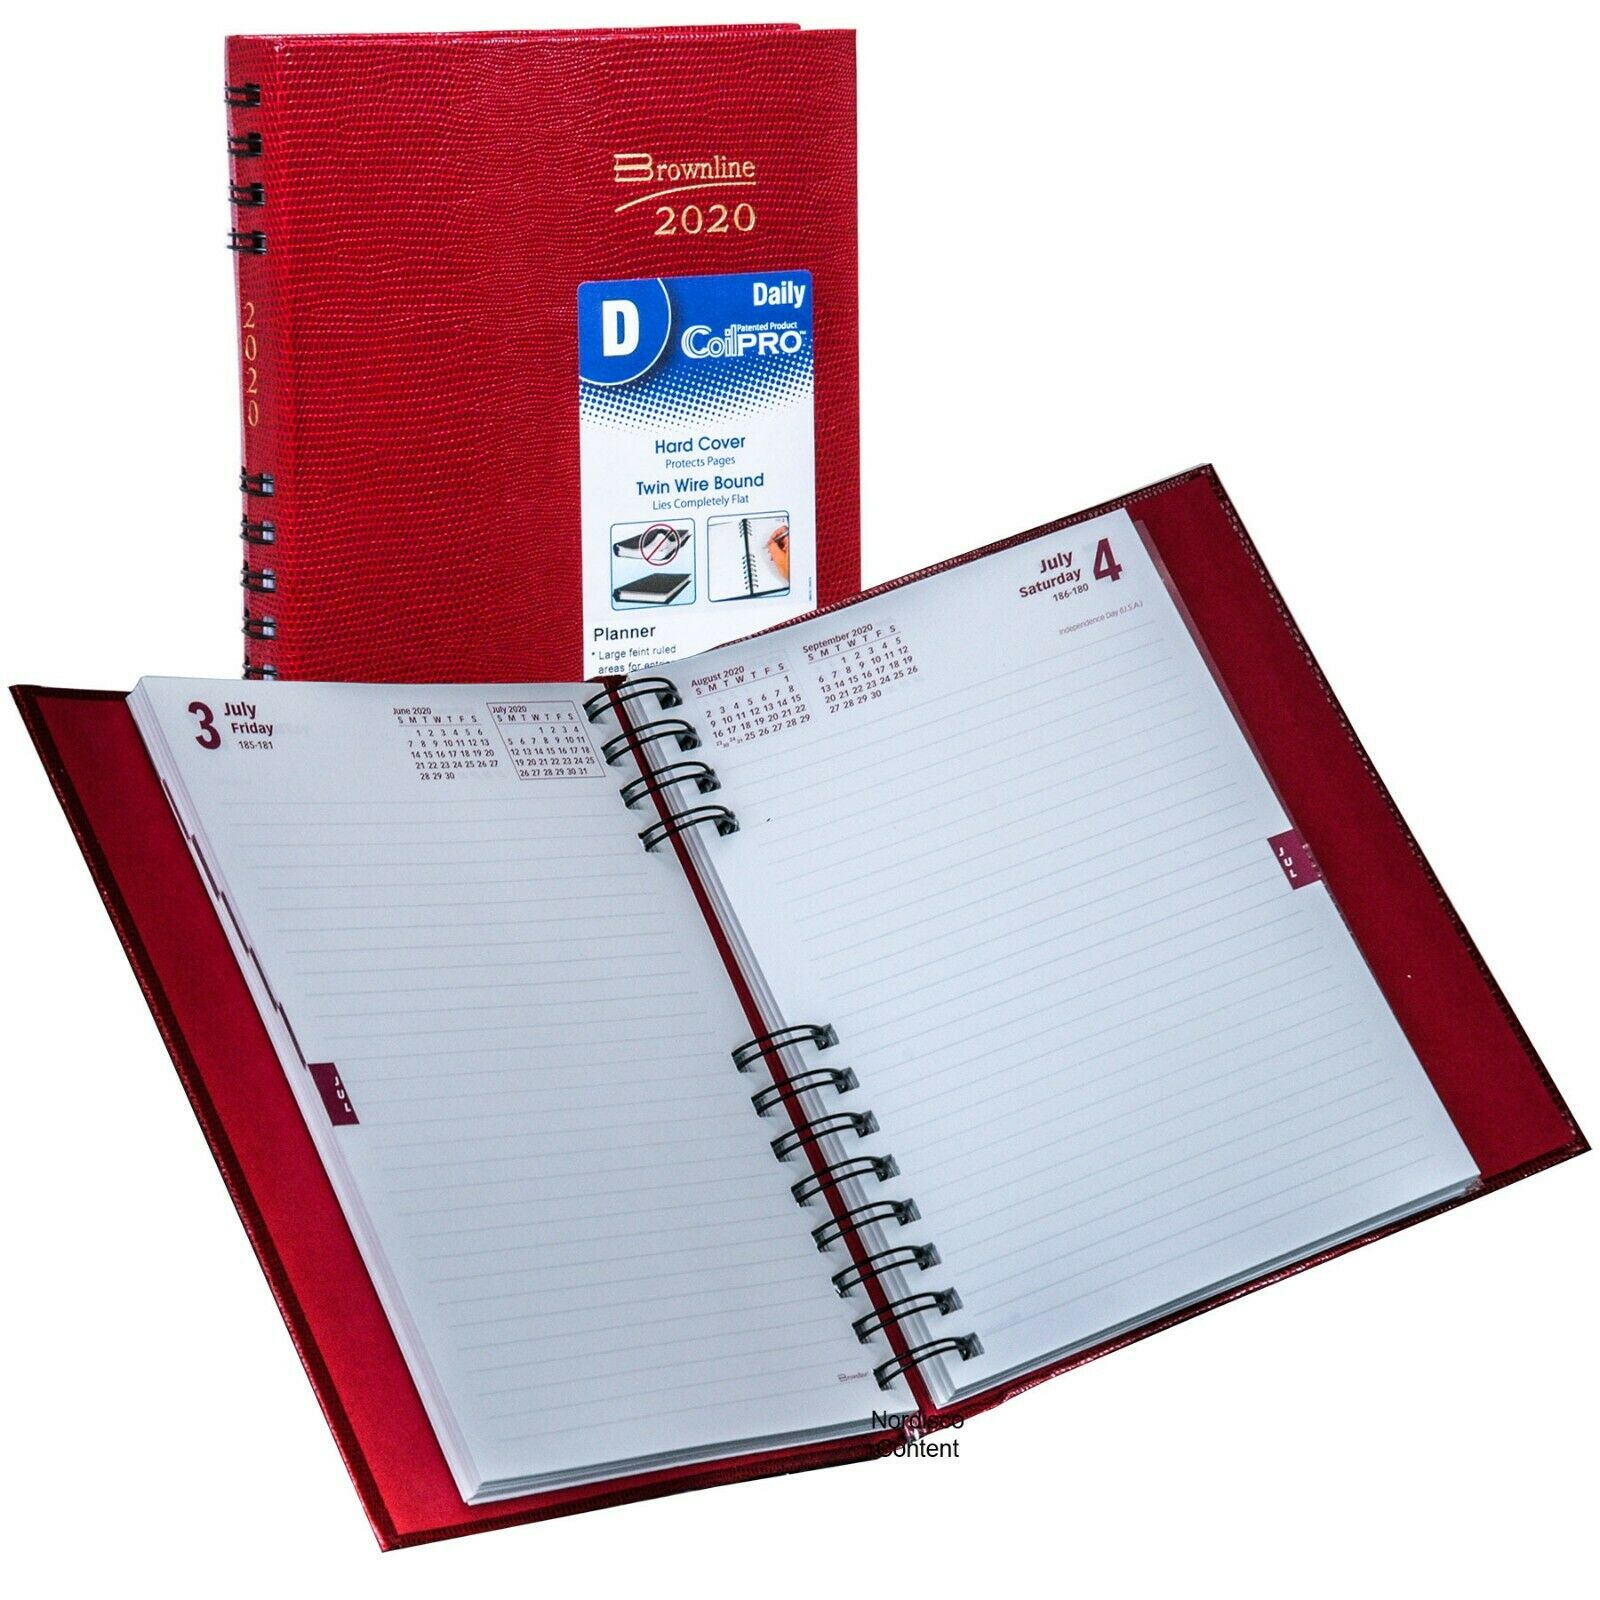 2020 Brownline CB389C.RED CoilPRO Daily Planner Diary, Hardc